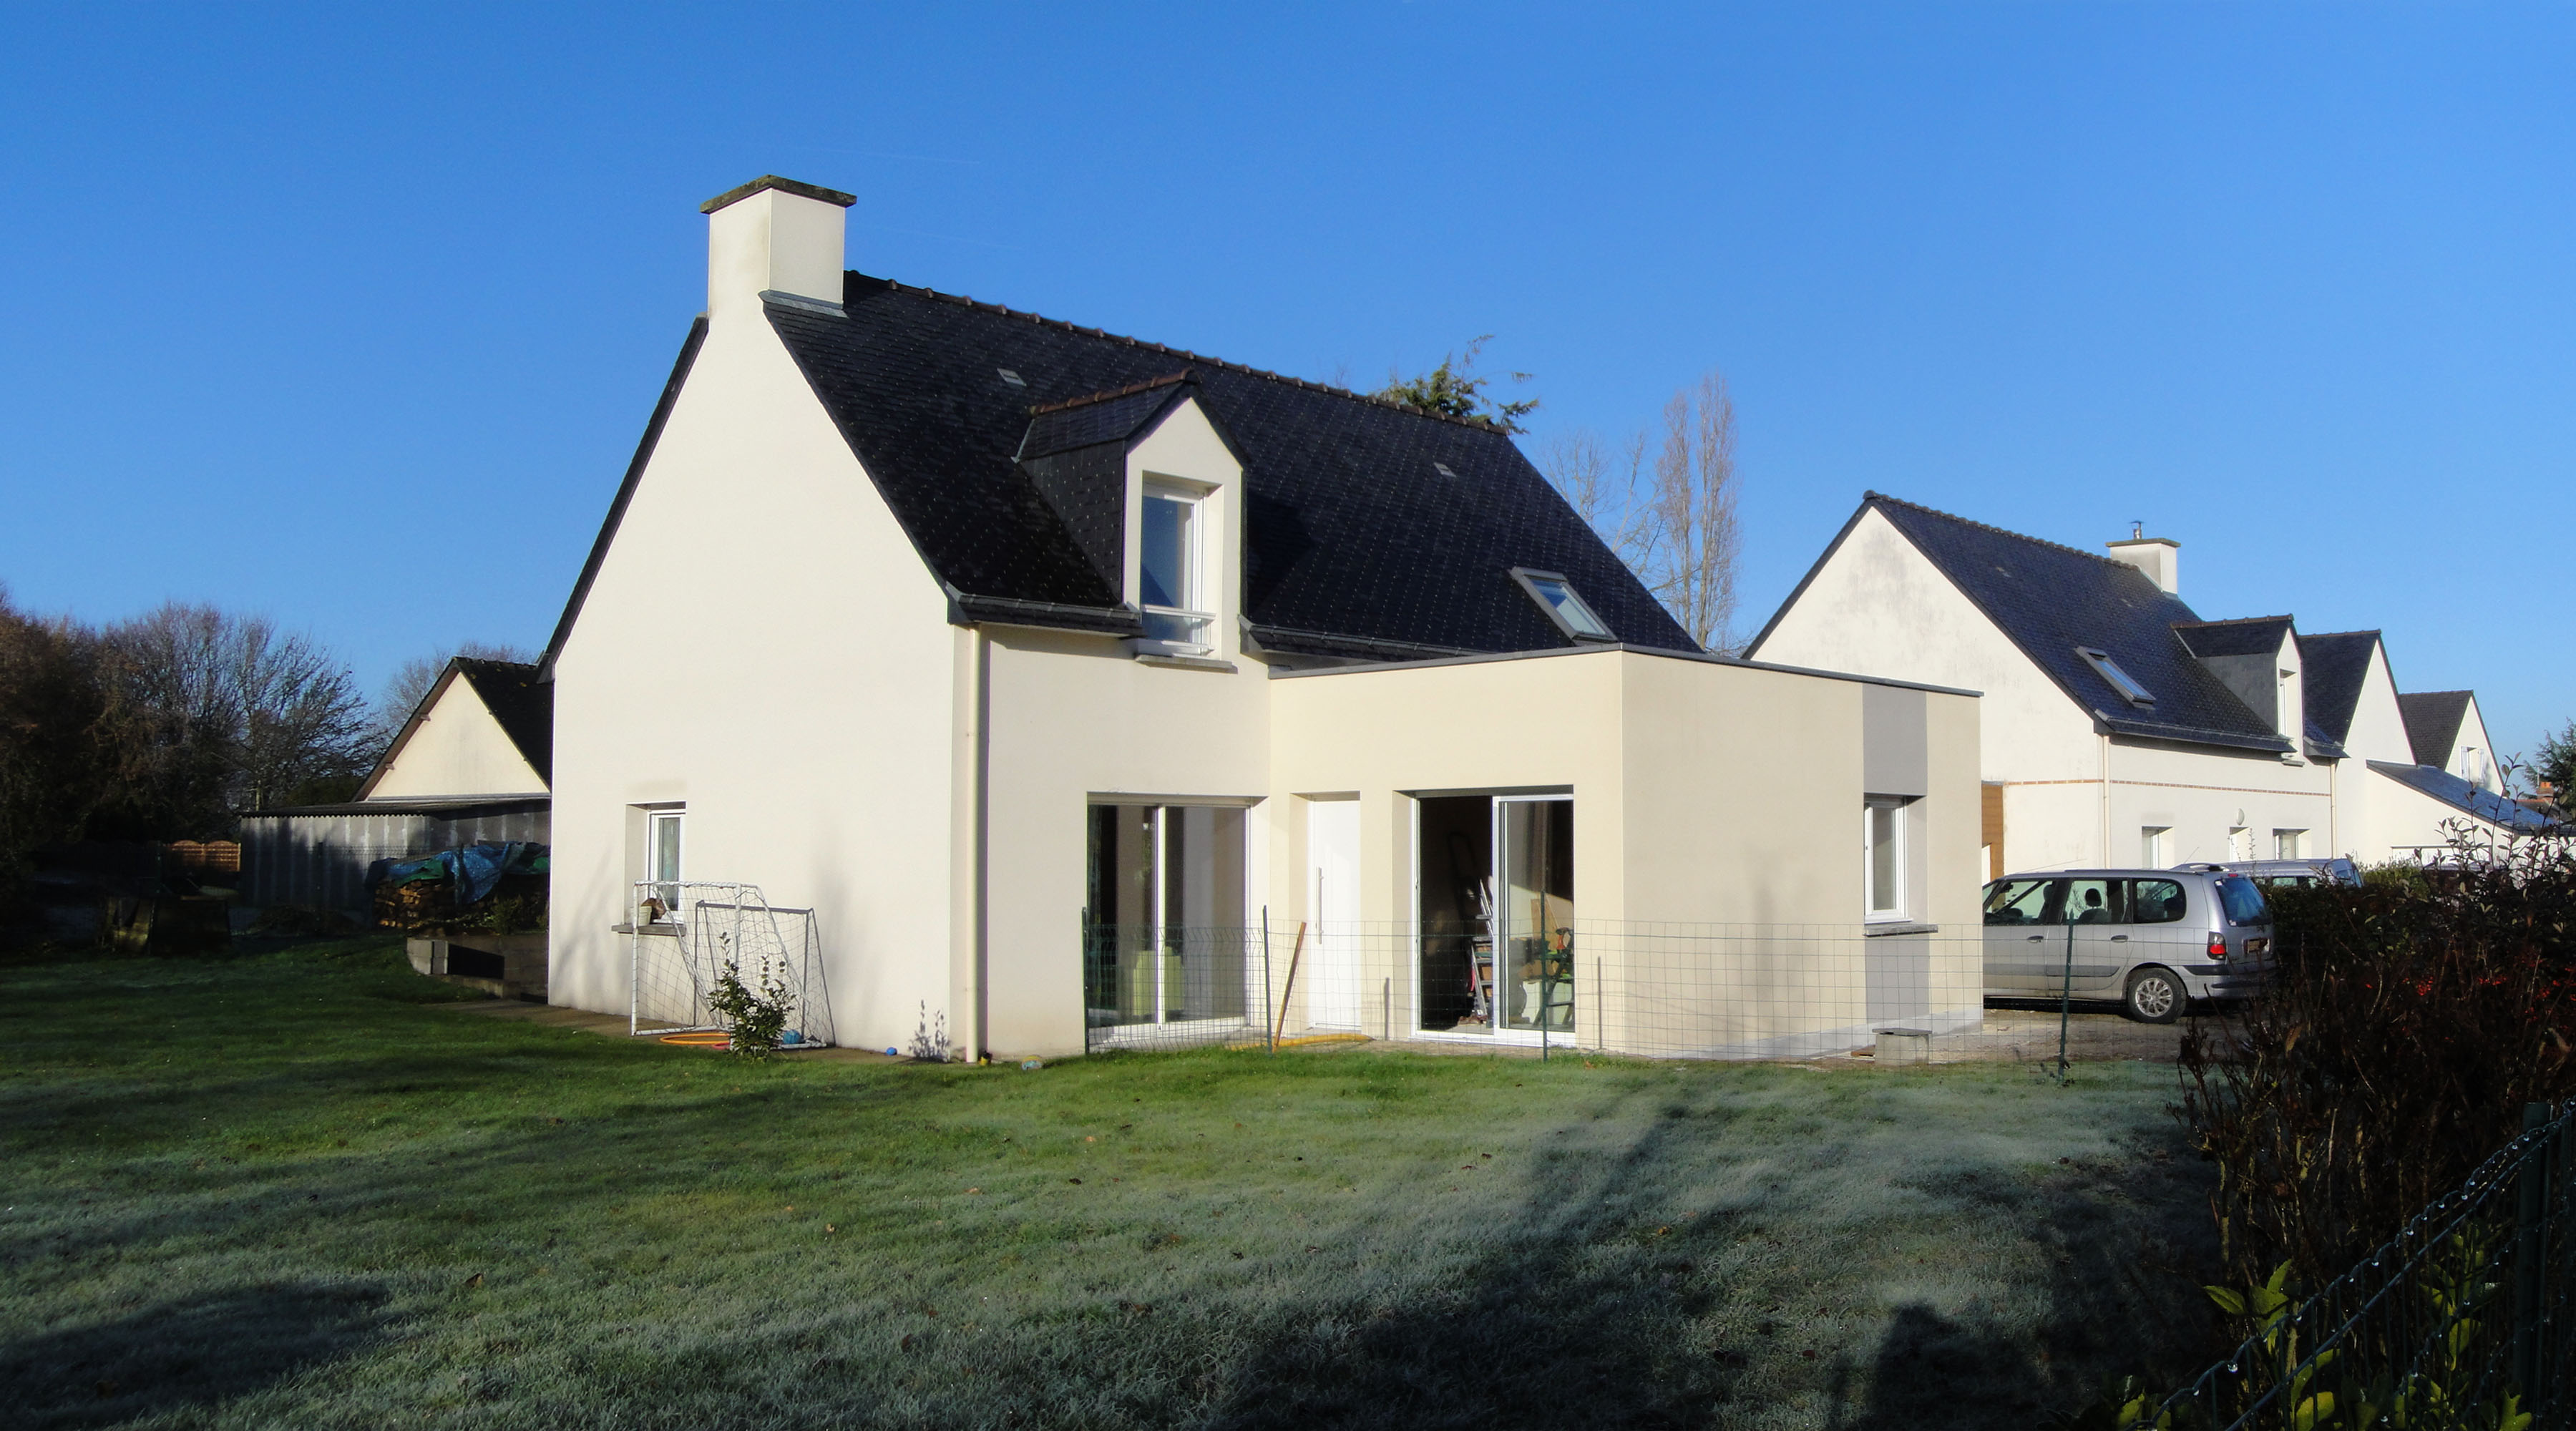 Projet c c 1 2 vue architecte lise roturier rennes for Extension maison en dur